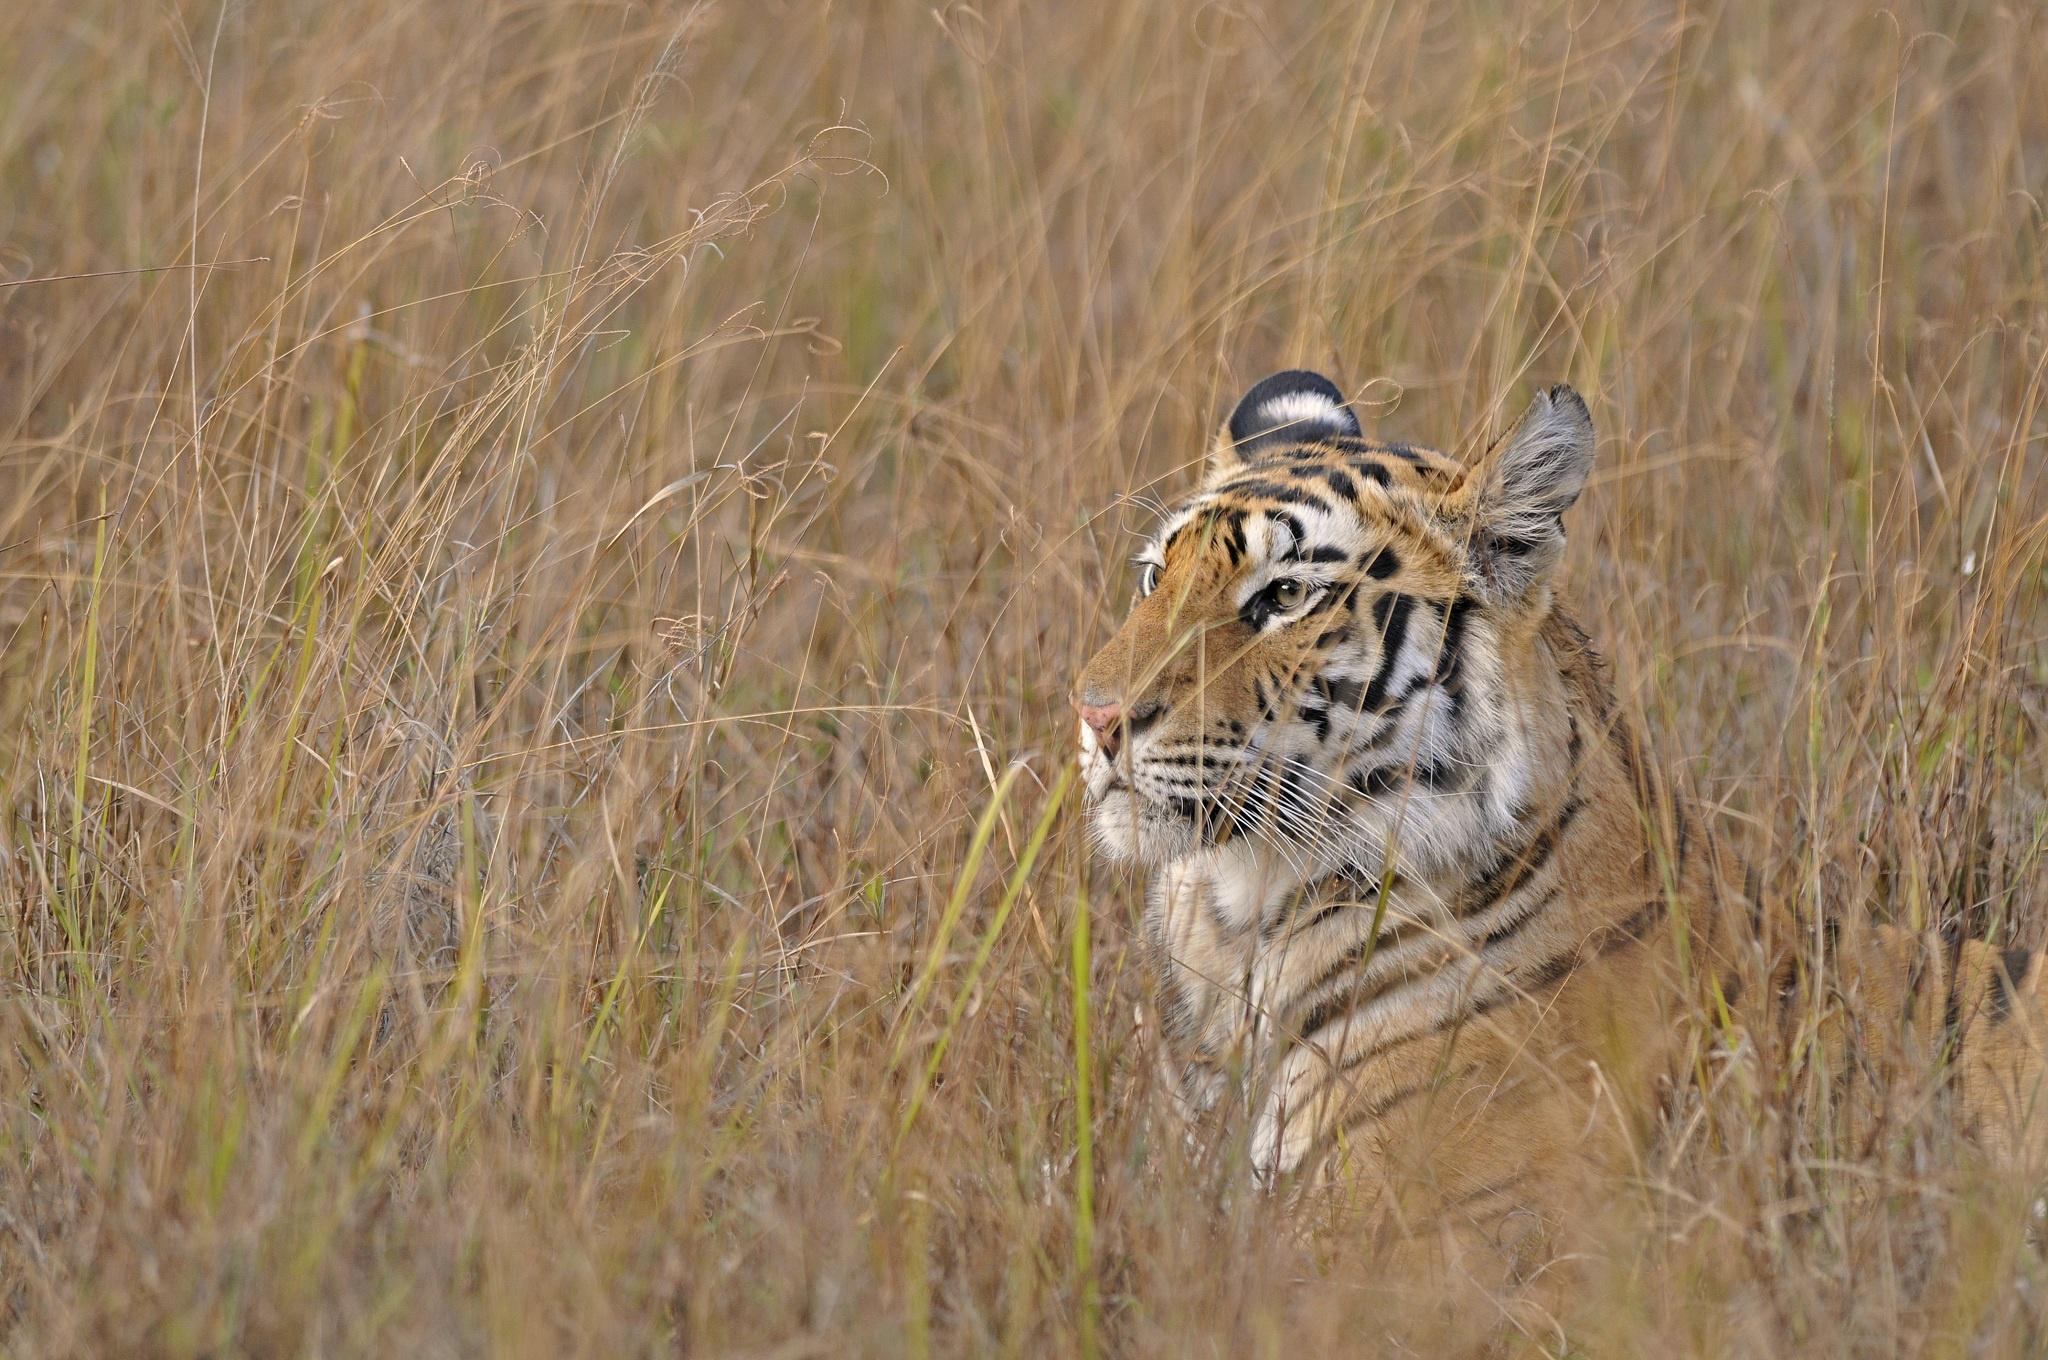 Smile Quotes Wallpaper Free Download Hd Tiger Wild Cat Face Profile Grass Camouflage Hd